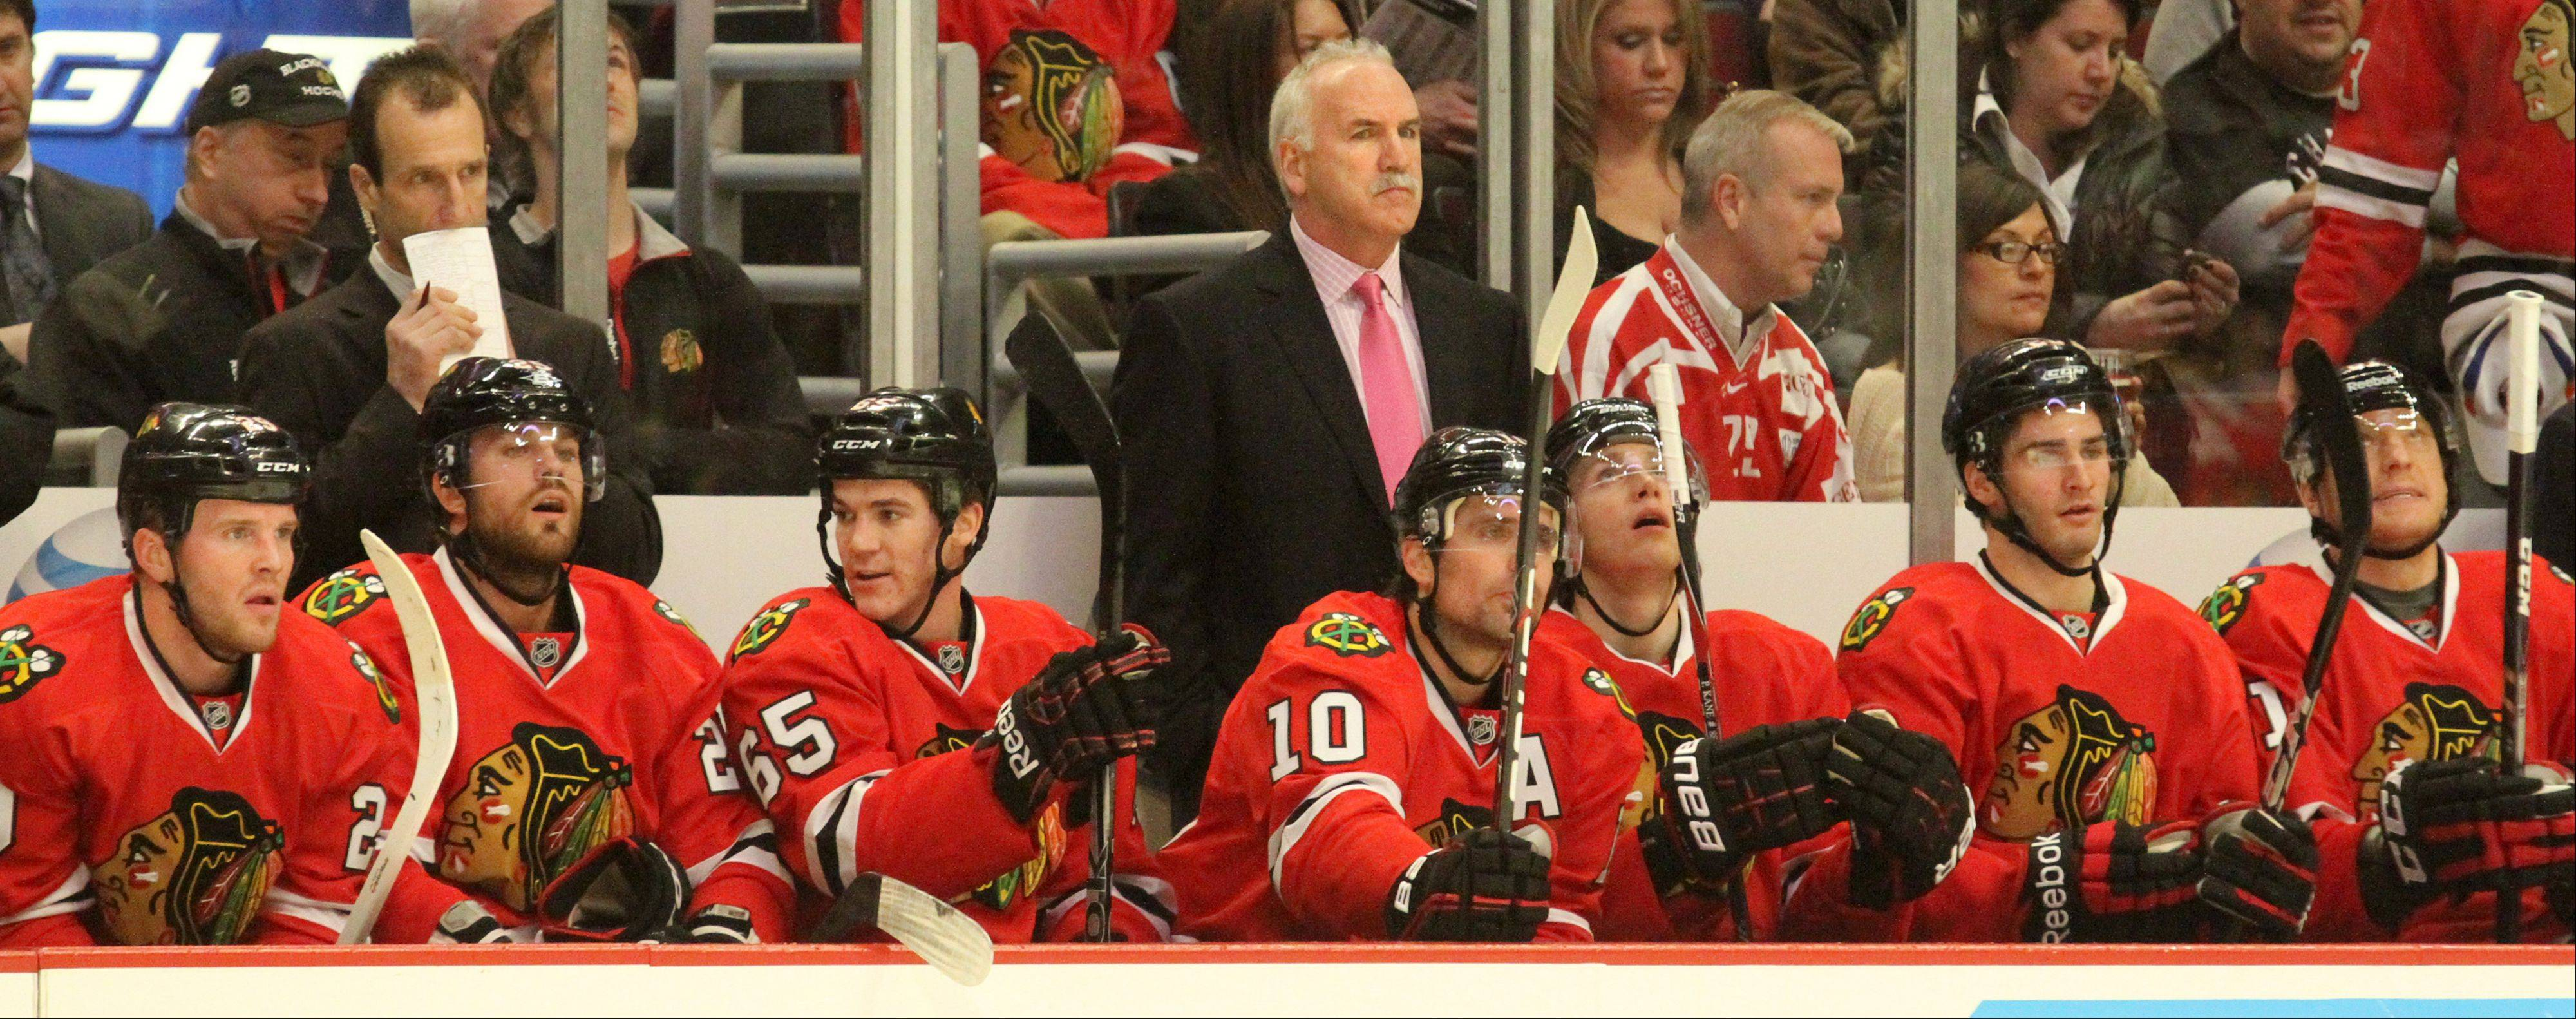 From his central position behind the bench, Blackhawks head coach Joel Quenneville has pushed all the right buttons for his record-setting team as it enters the second round of NHL playoffs.